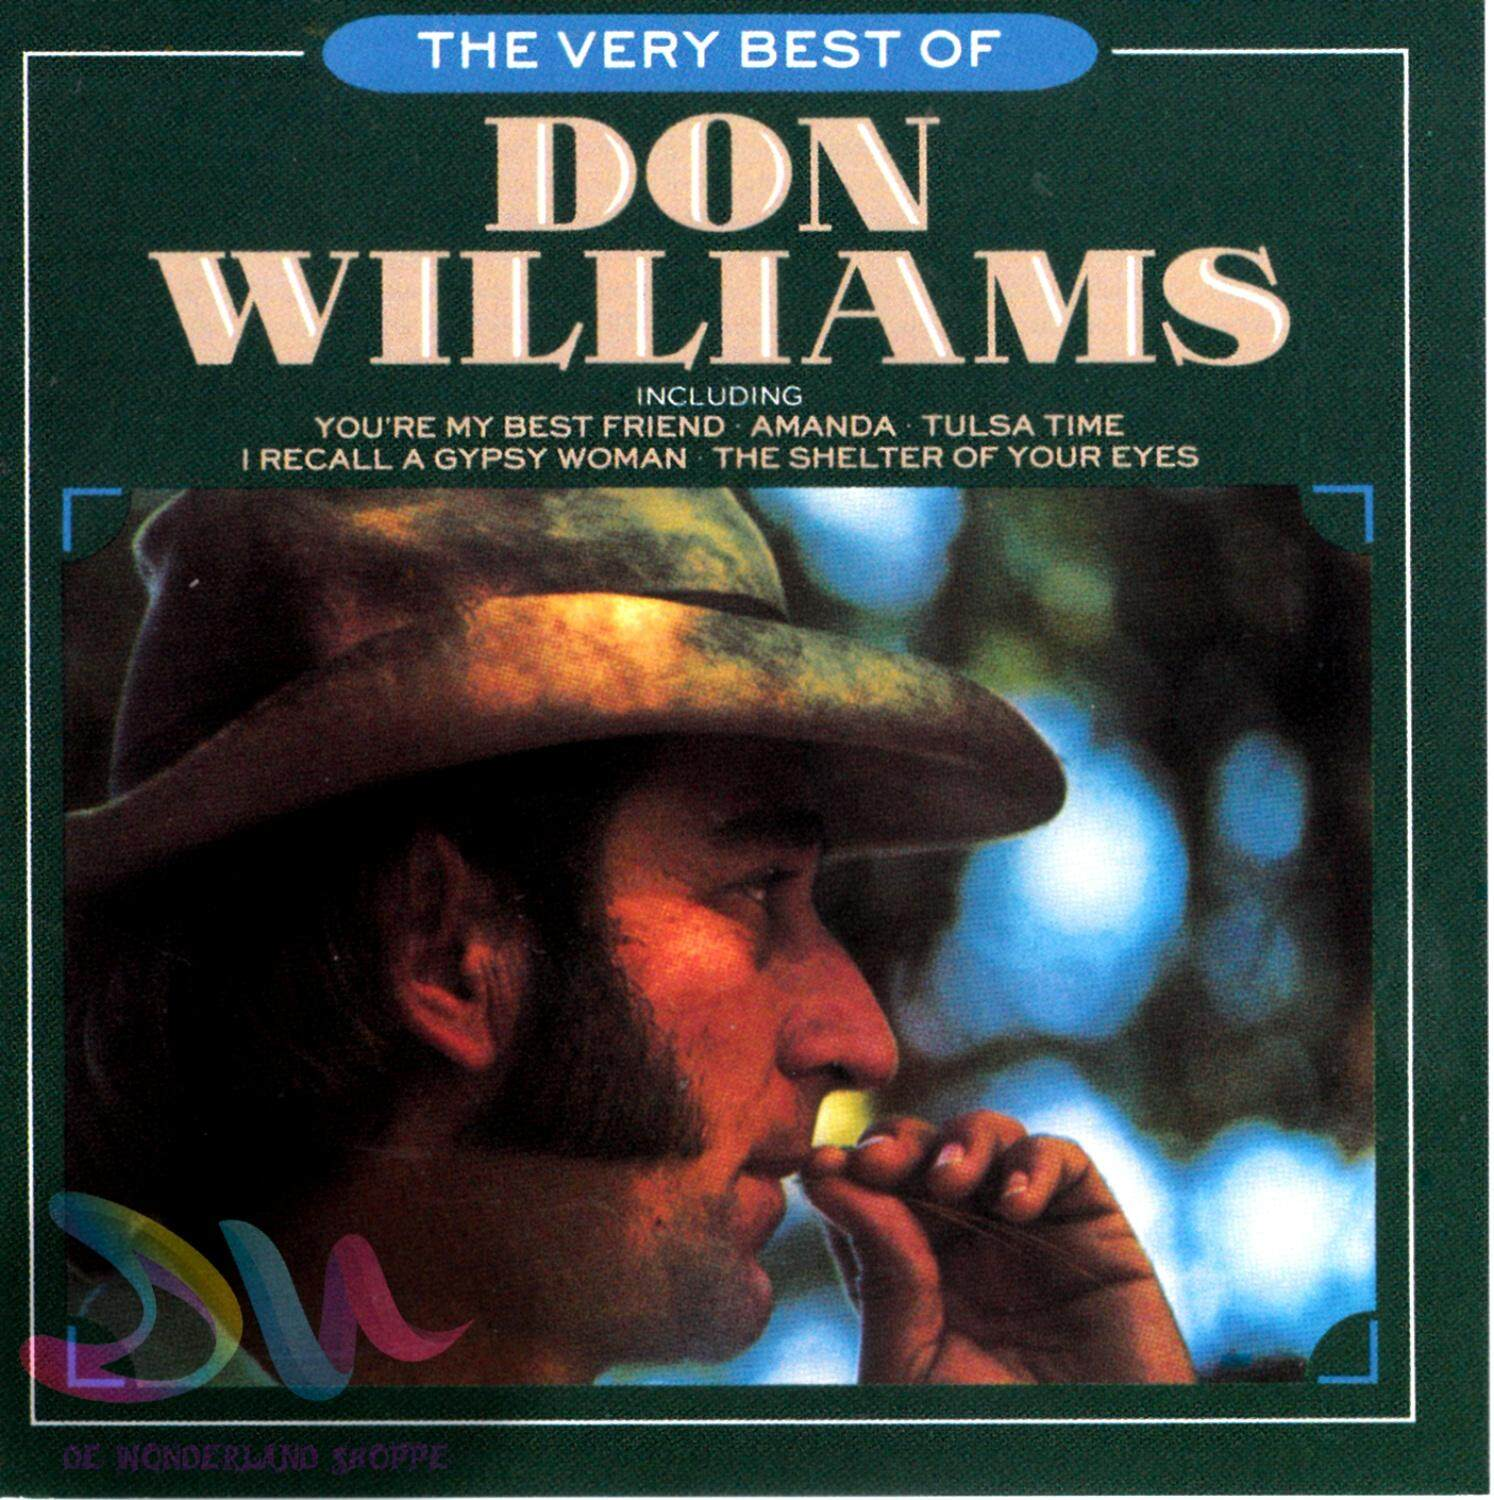 Don Williams - The Very Best Of Don Williams - Import Cd Song By De Wonderland Shoppe.